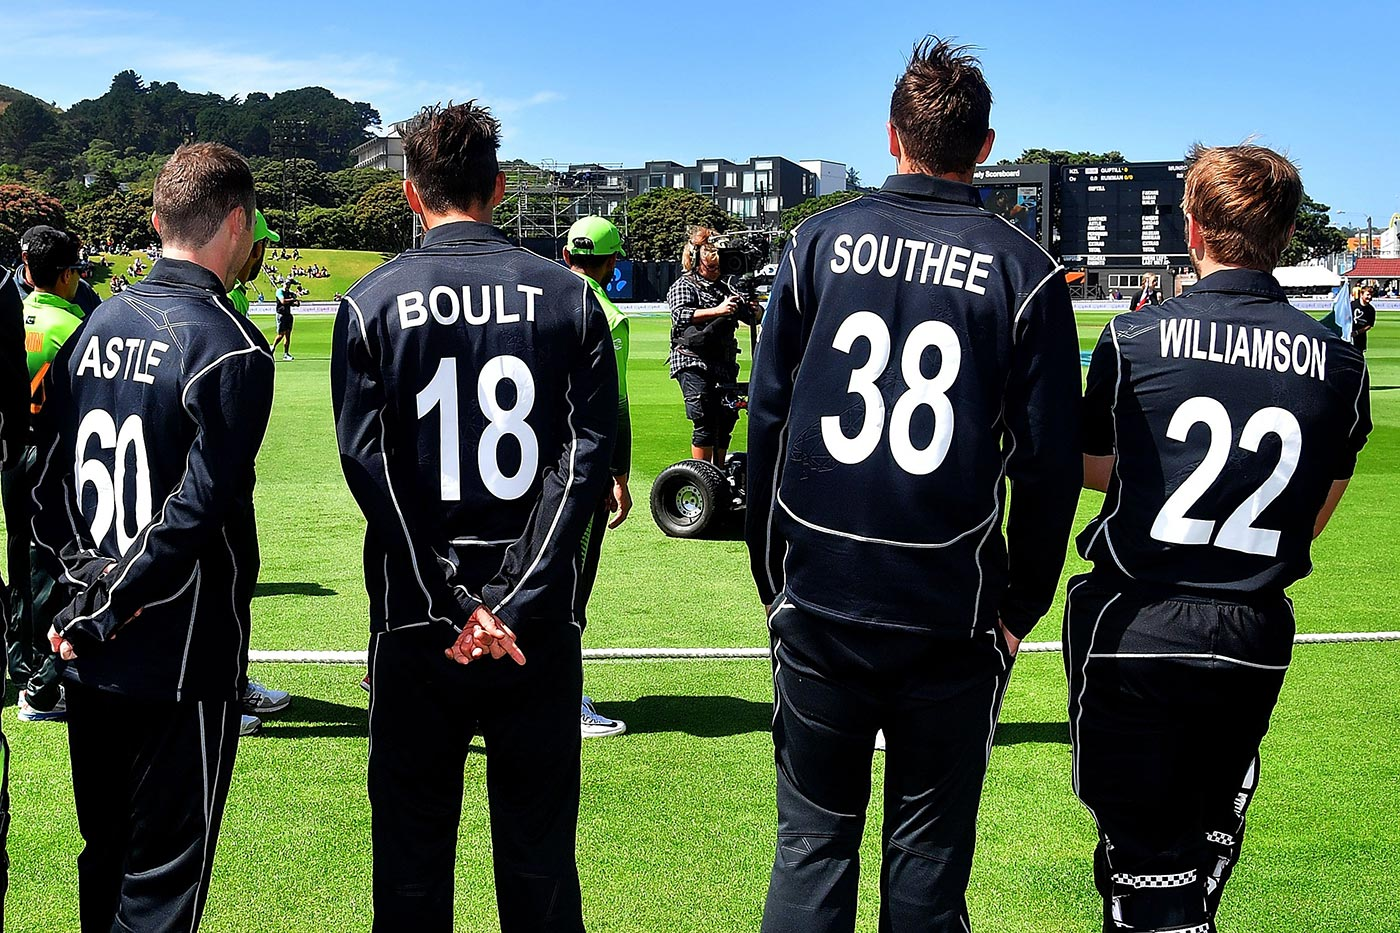 Todd Astle, Trent Boult, Tim Southee and Kane Williamson stand by the boundary